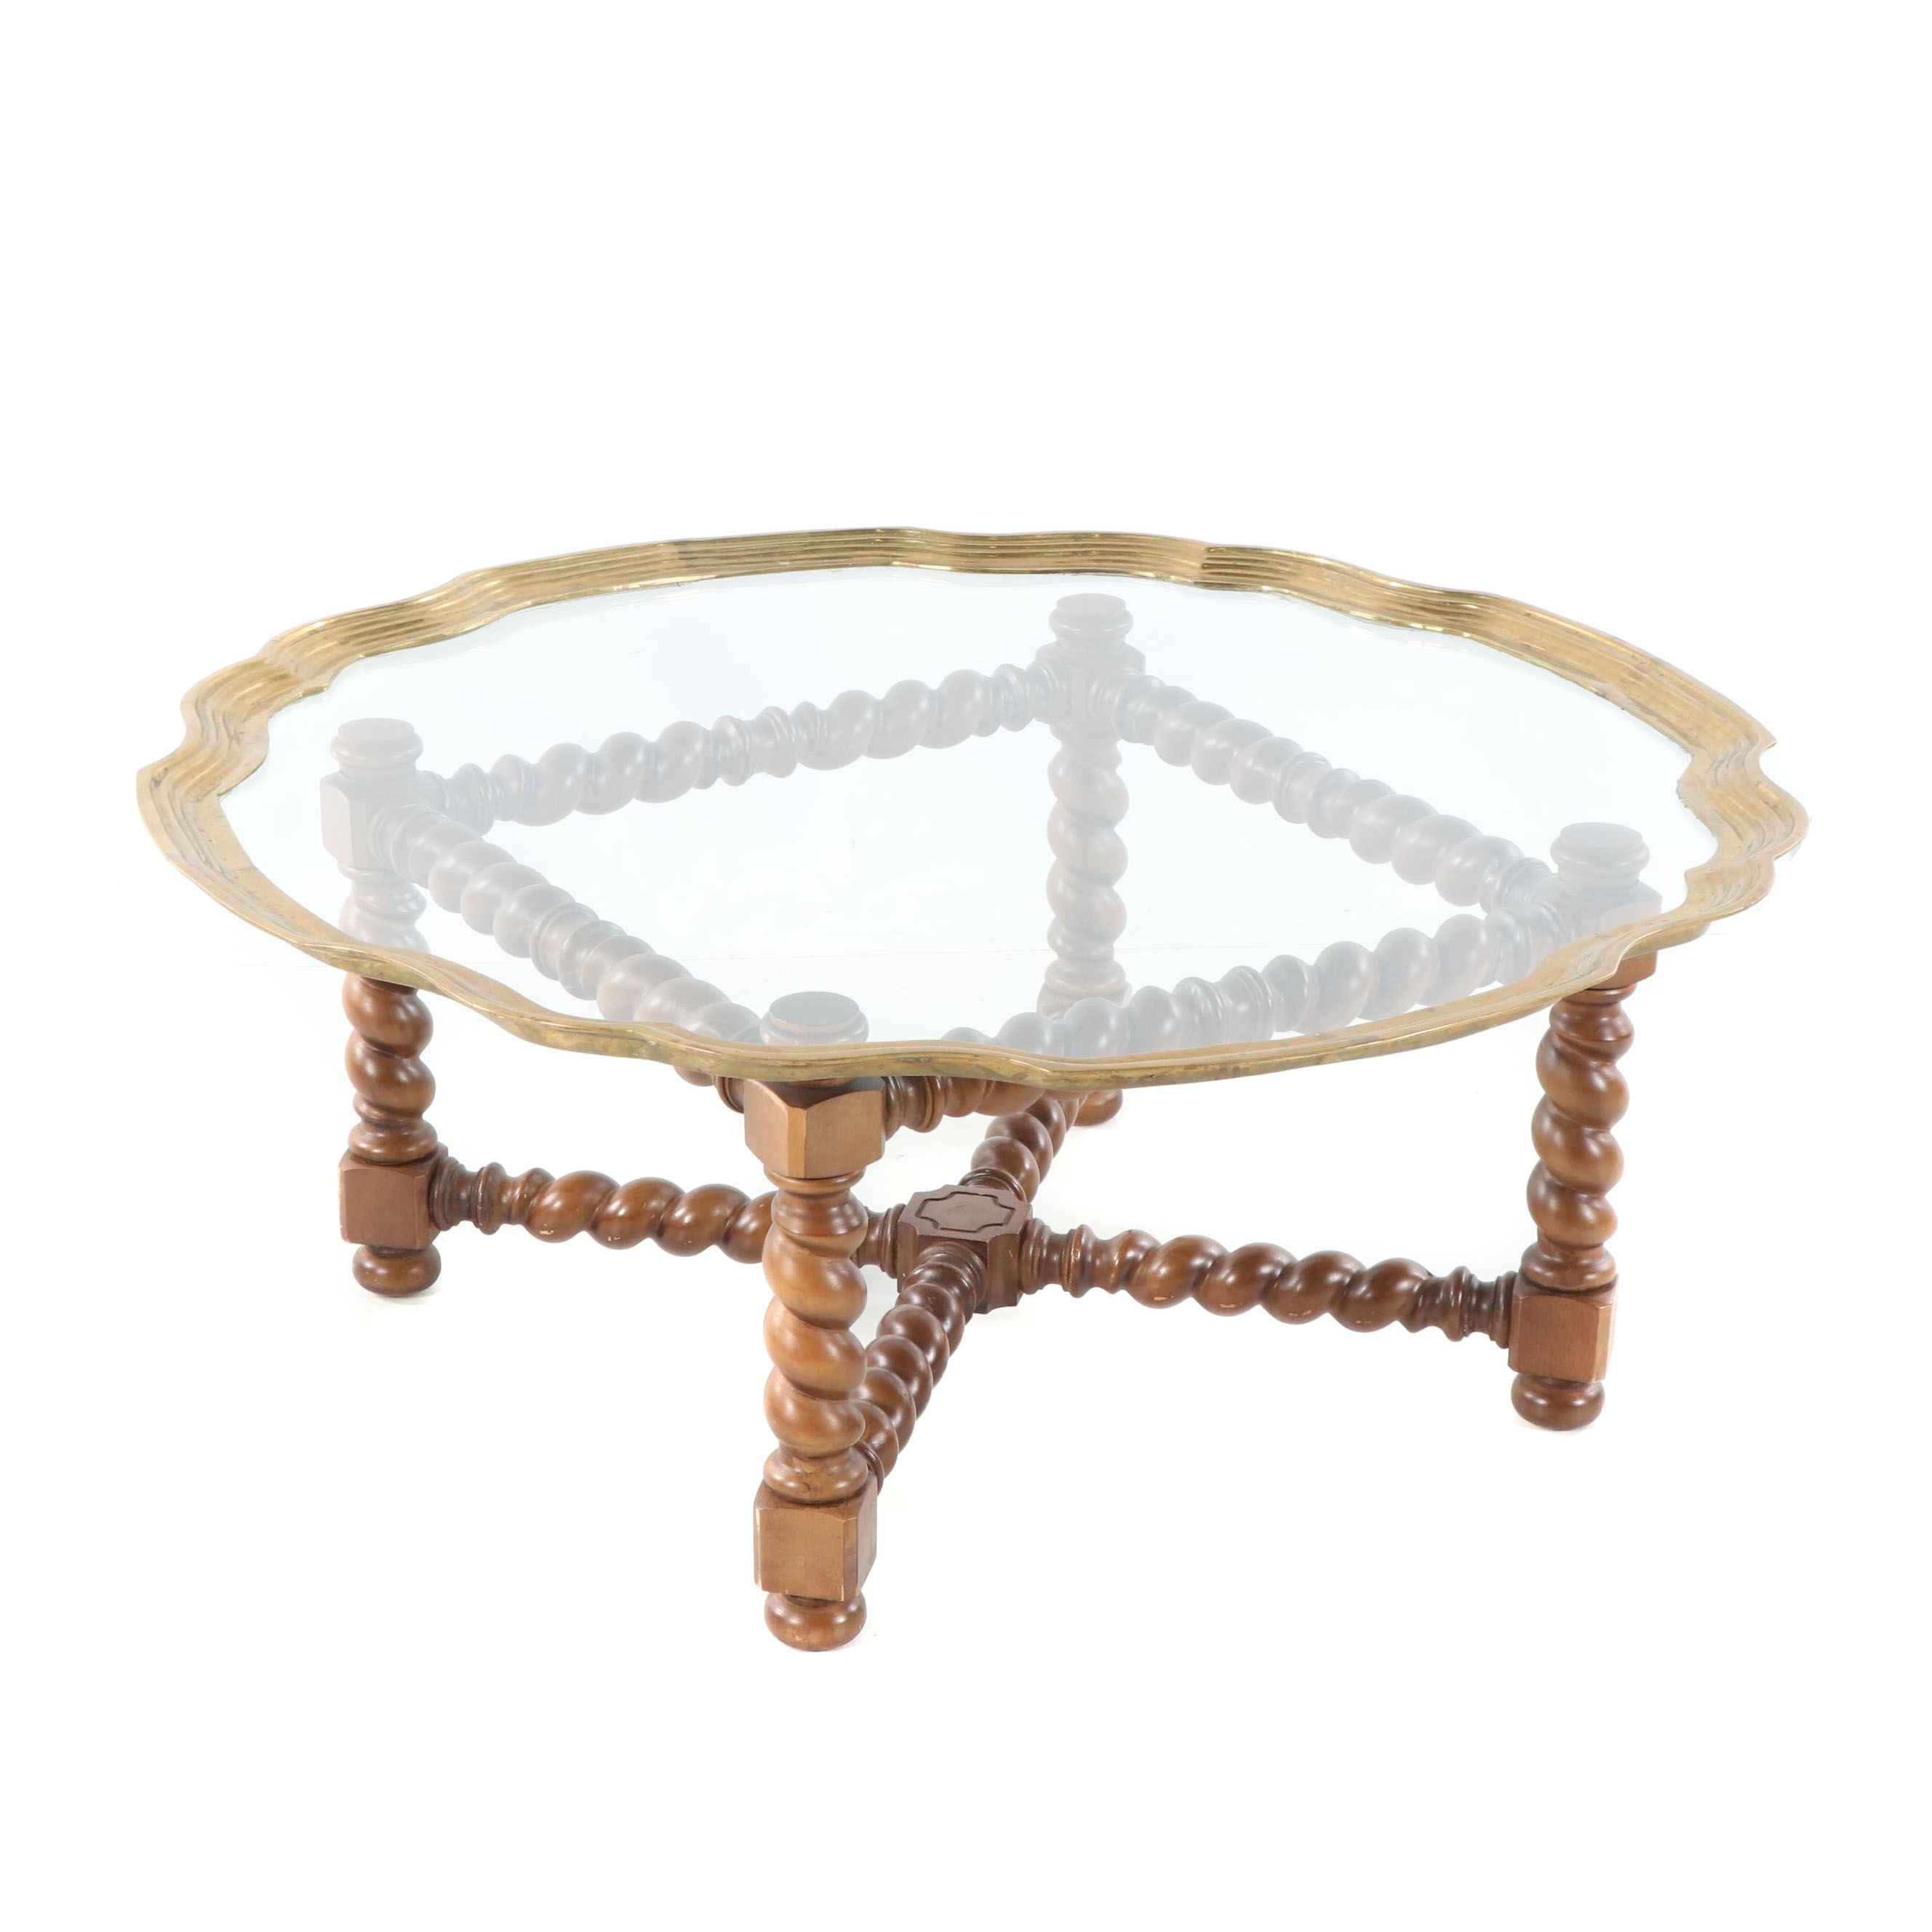 William & Mary Style Maple Cocktail Table with Brass Framed Glass Tray Top, 21C